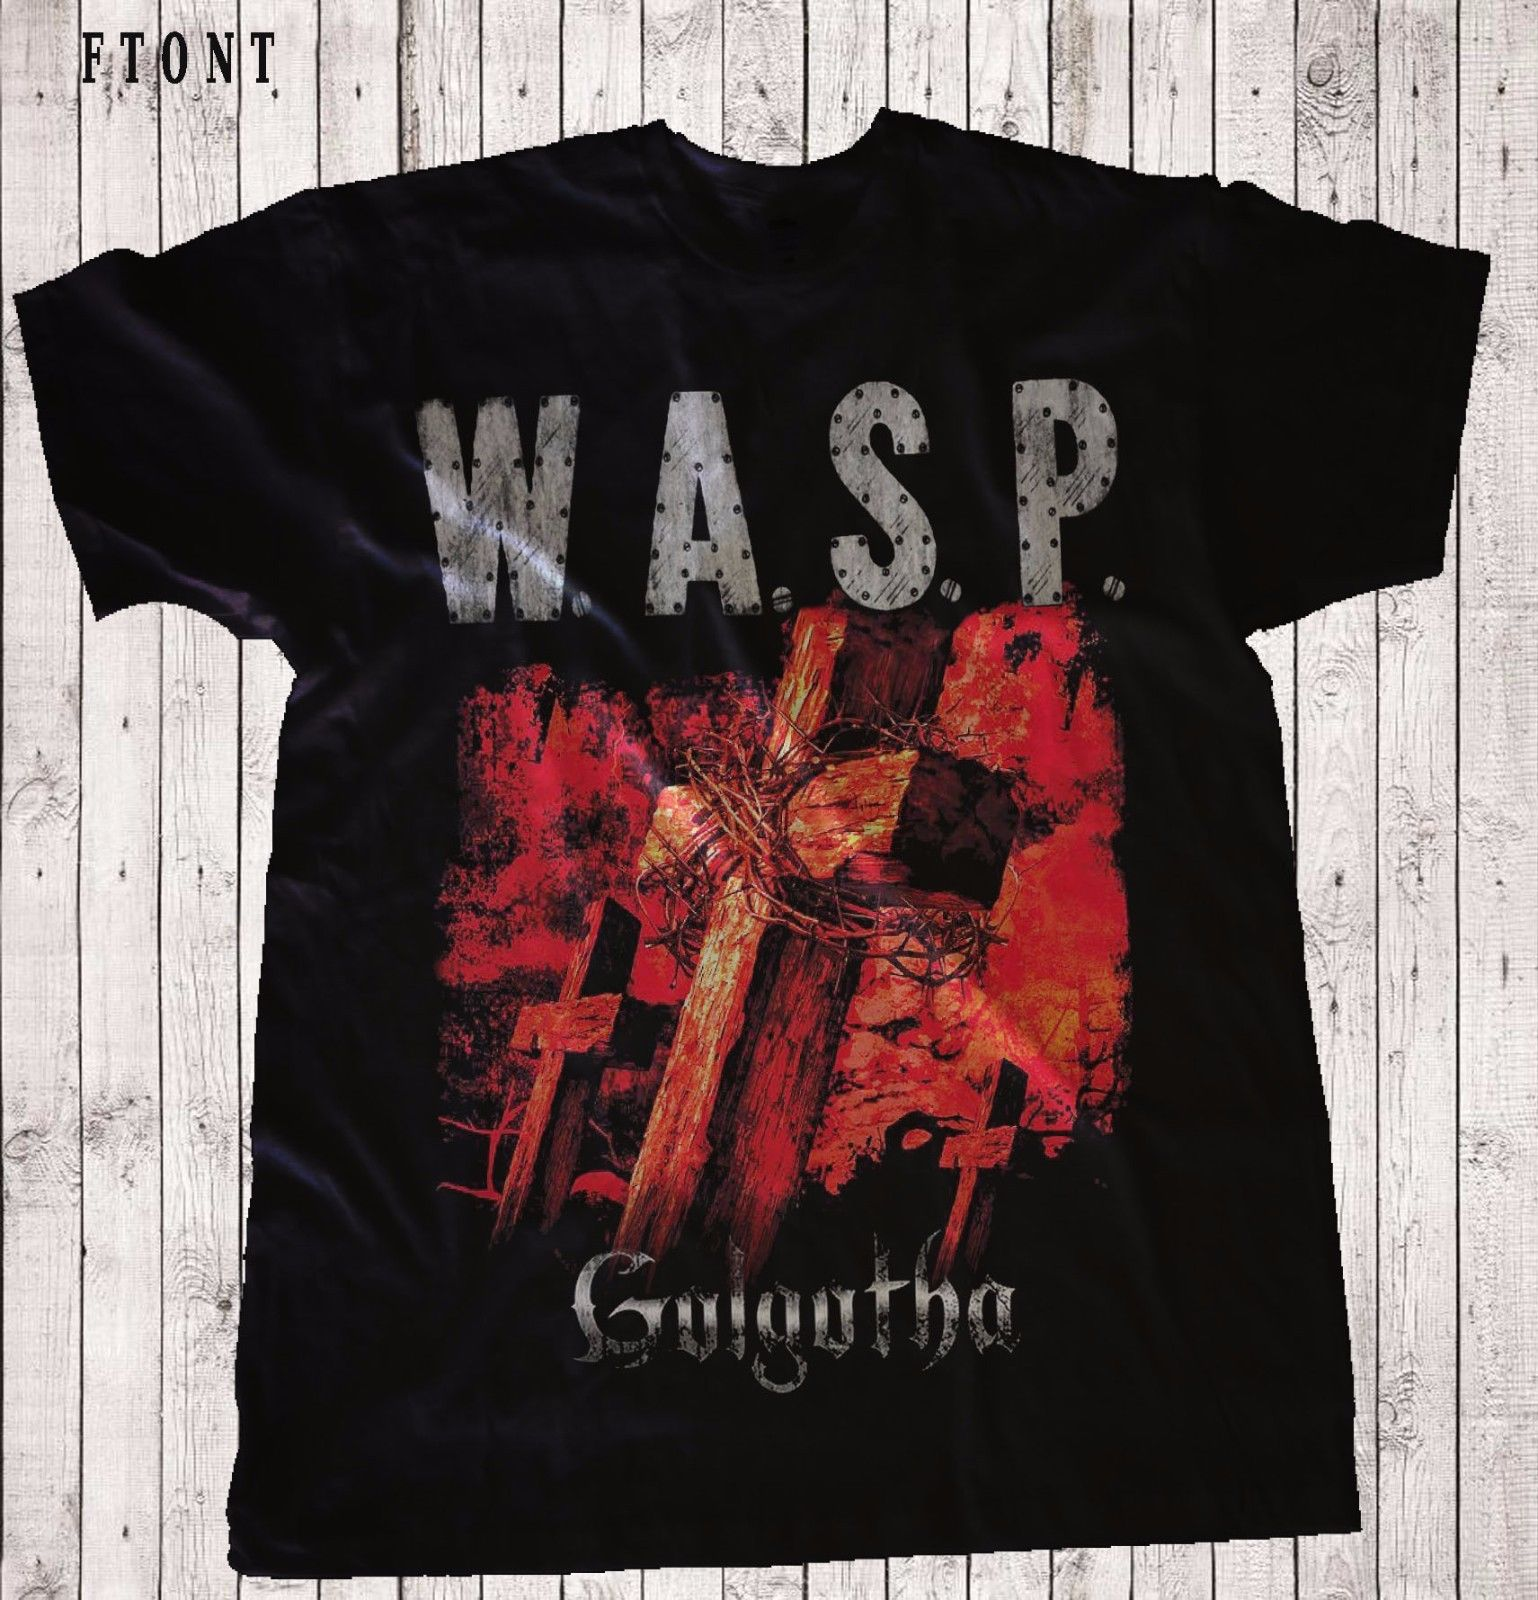 W.A.S.P.-Golgotha- Heavy metal-Judas Priest ,T-shirt-SIZES: S to 7XL